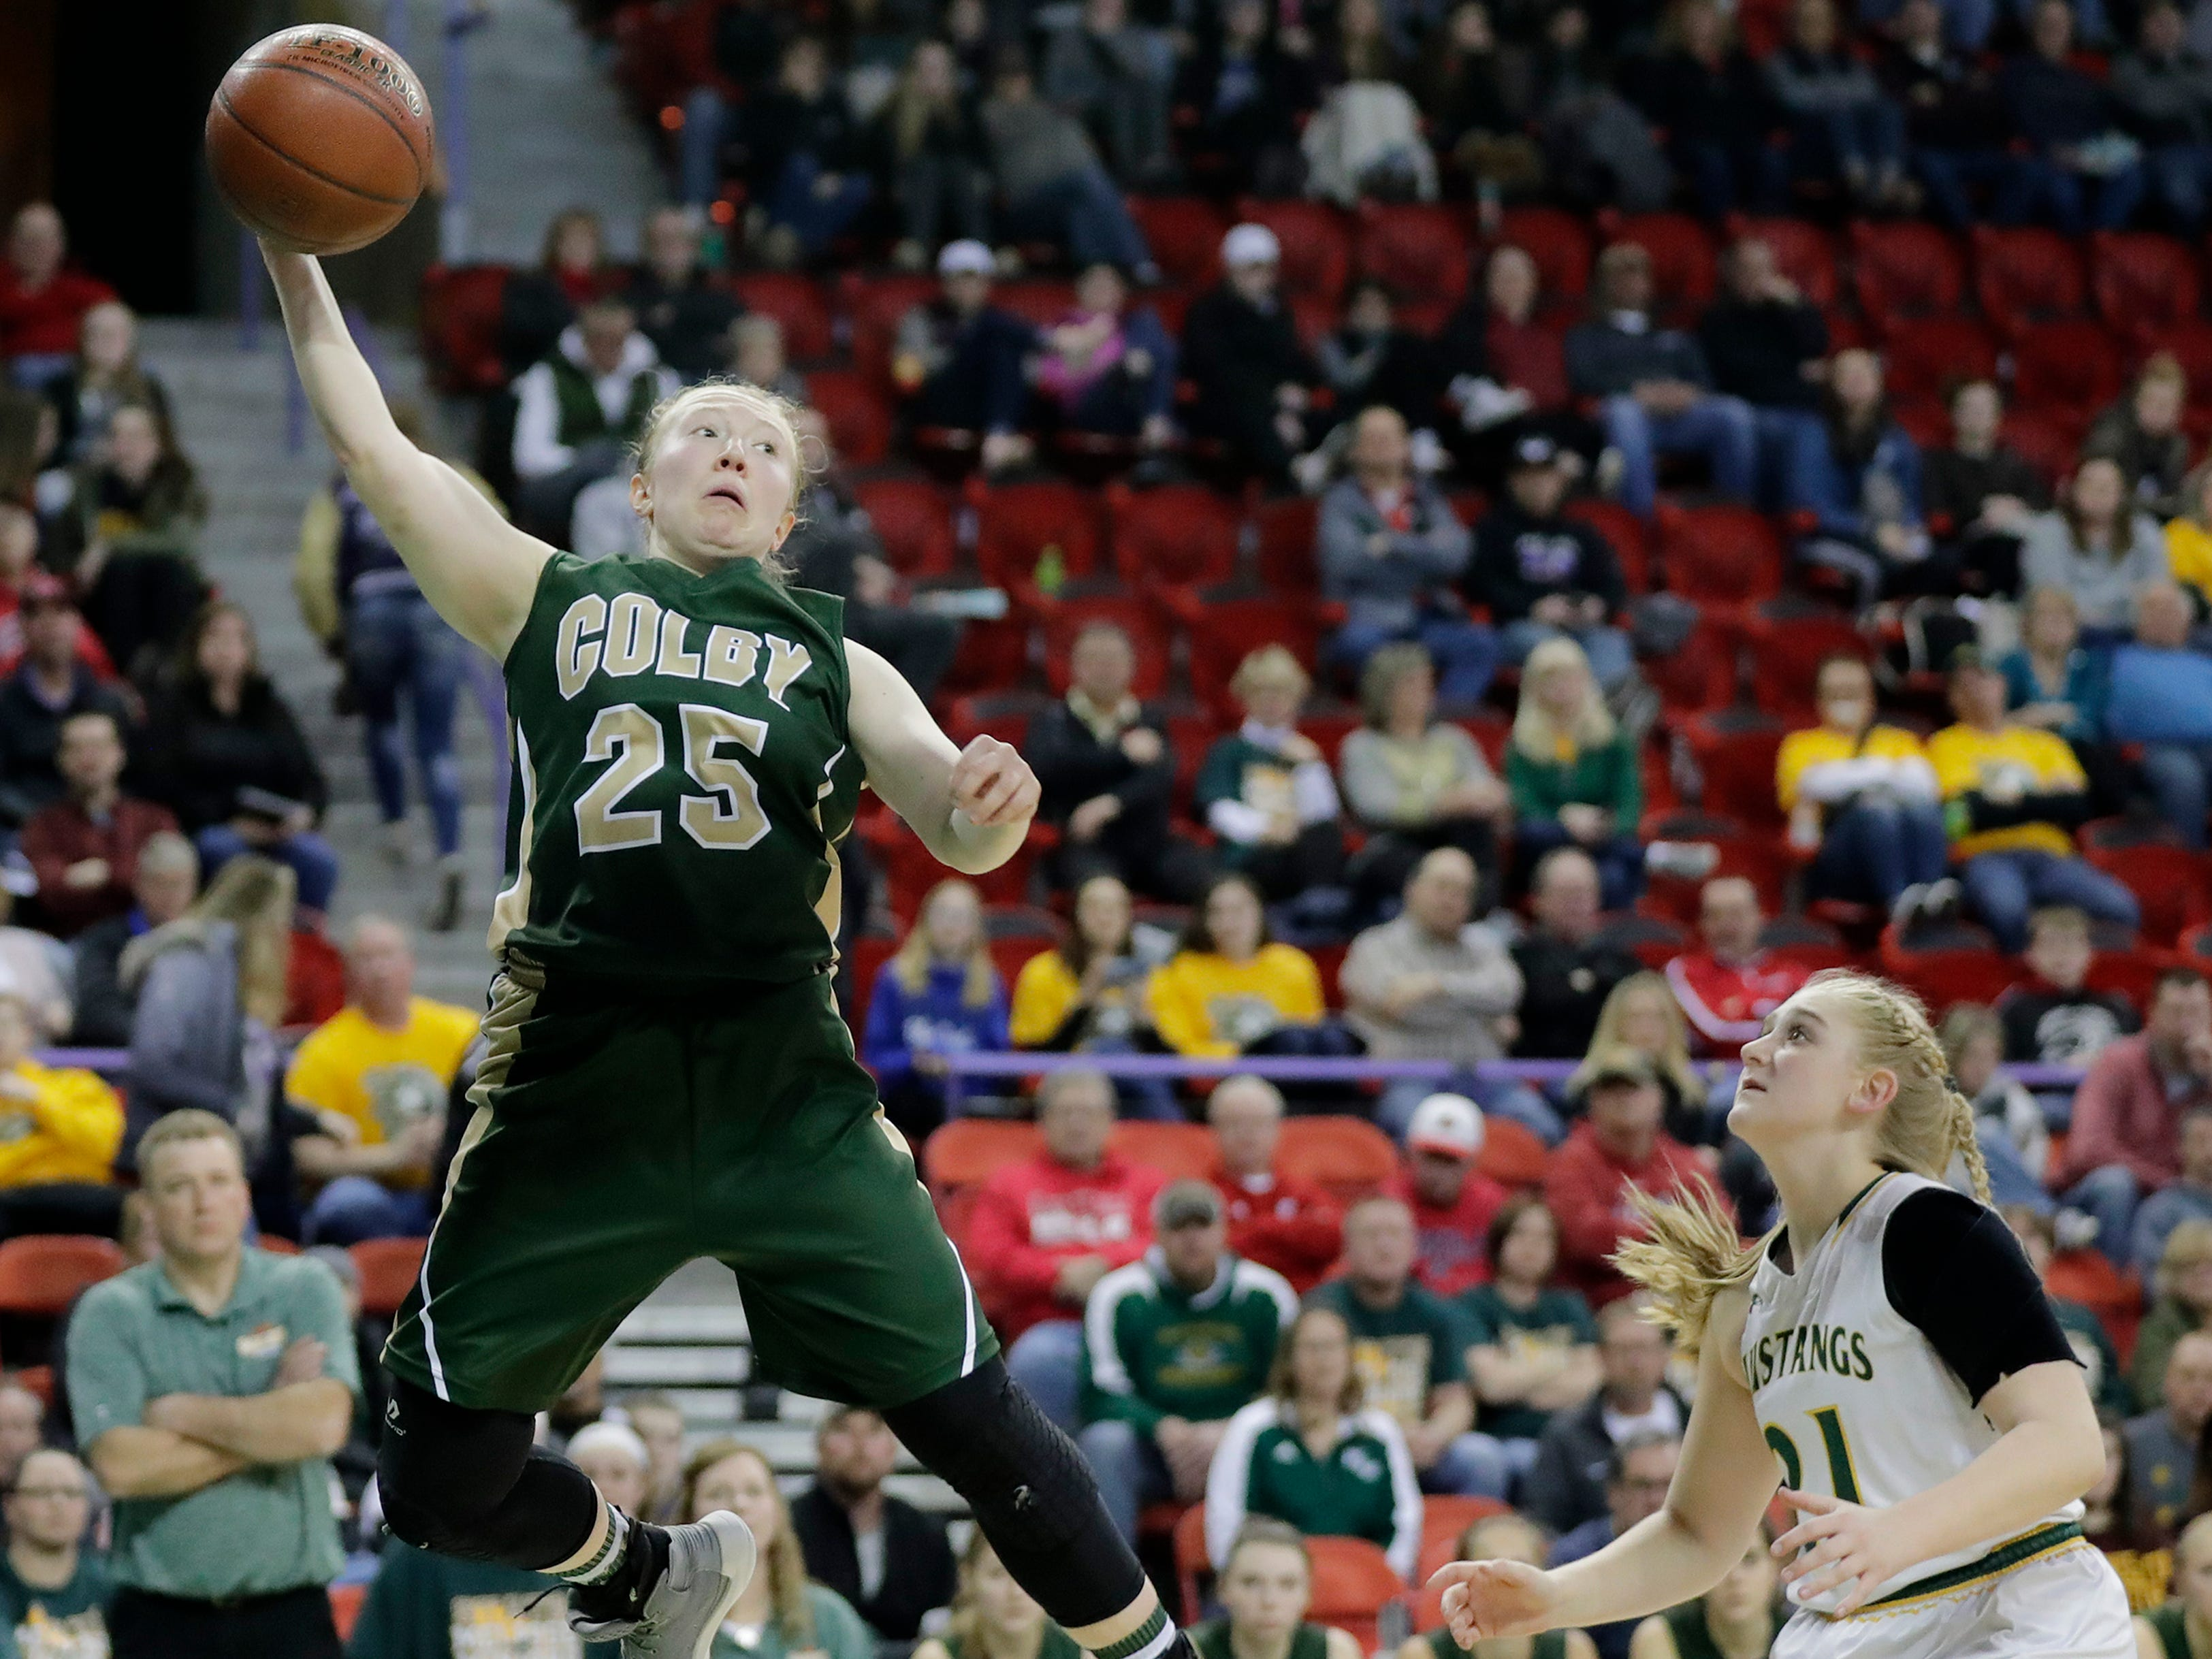 Colby's Ashley Streveler (25) saves the ball from going out of bounds against Melrose-Mindoro in a Division 3 semifinal at the WIAA state girls basketball tournament at the Resch Center on Thursday, March 7, 2019, in Ashwaubenon, Wis.